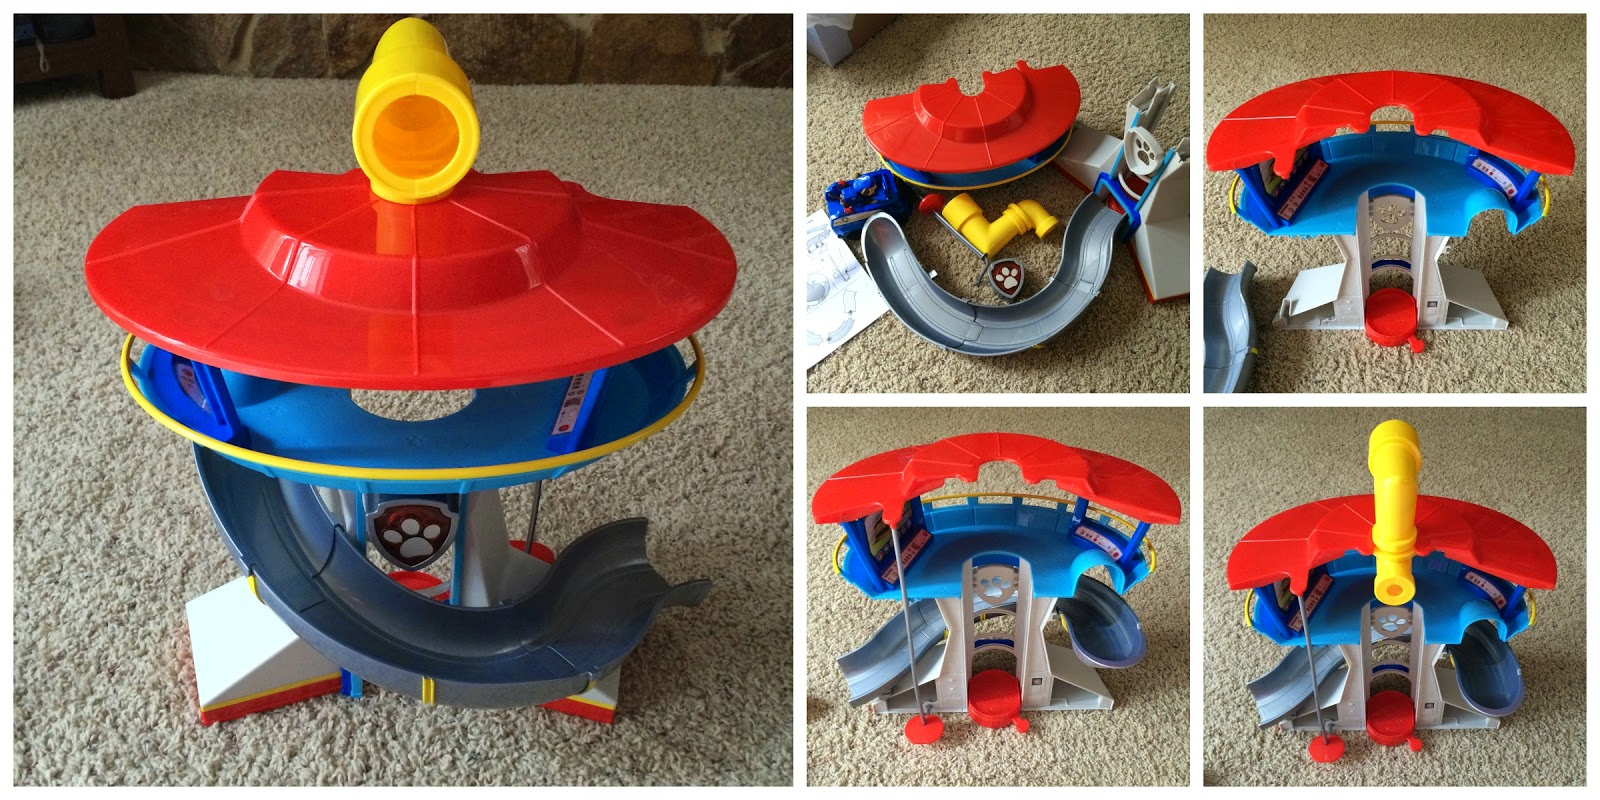 assembling Paw Patrol Lookout Playset #gotitfree